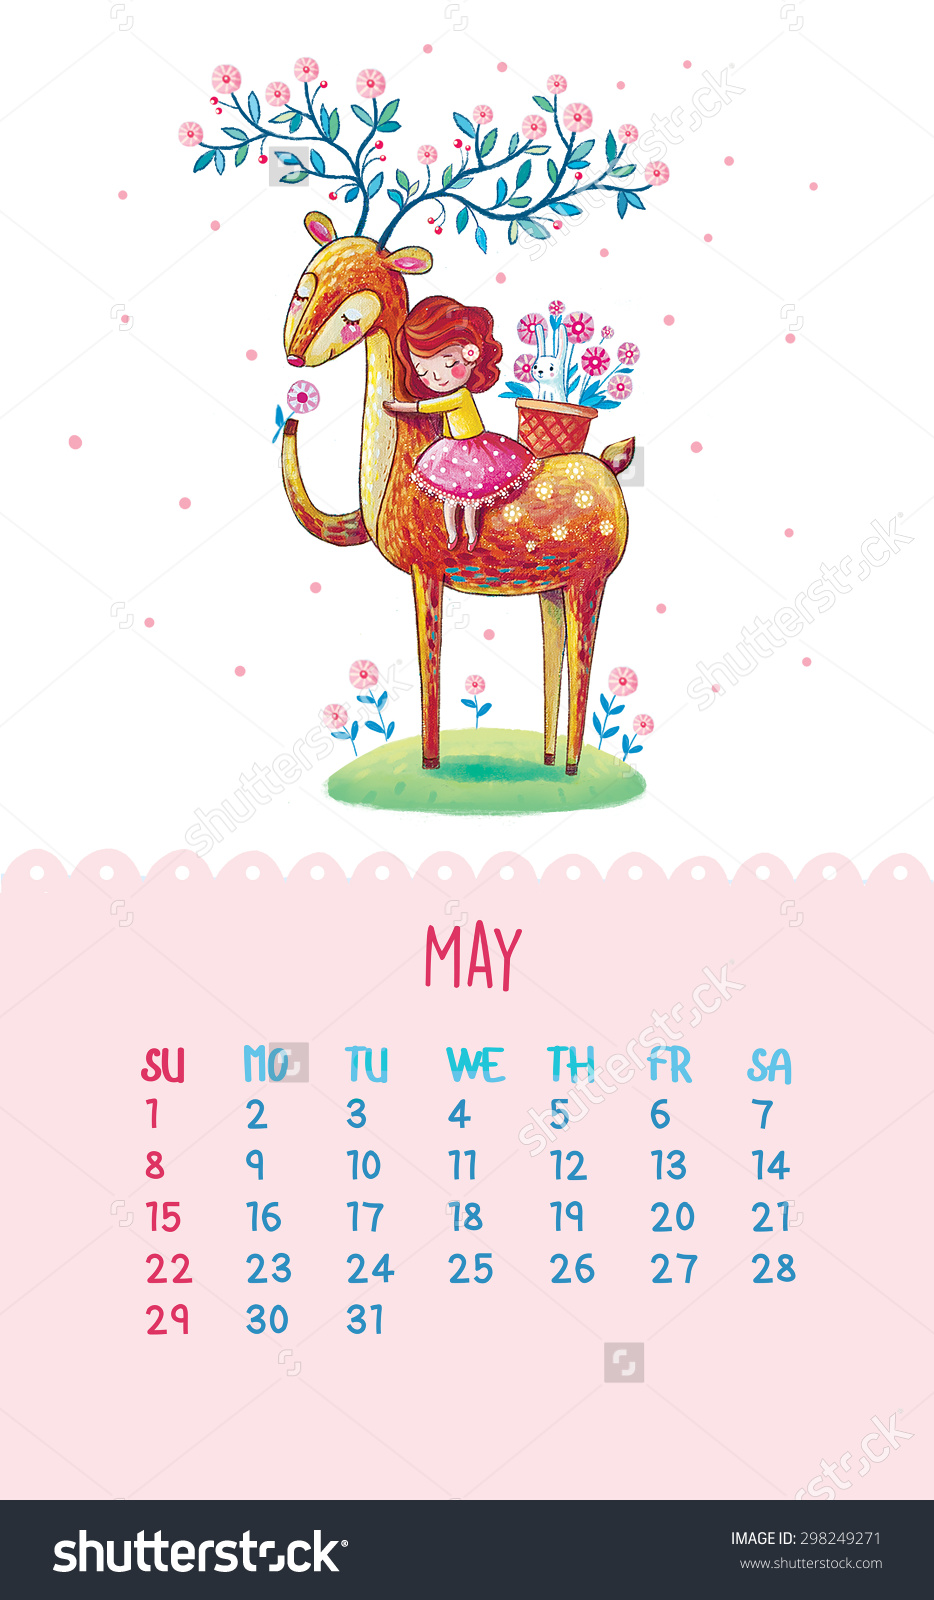 Pretty may 2016 calendar clipart clipart royalty free Cute may 2016 calendar - Printable Monthly Calendar clipart royalty free